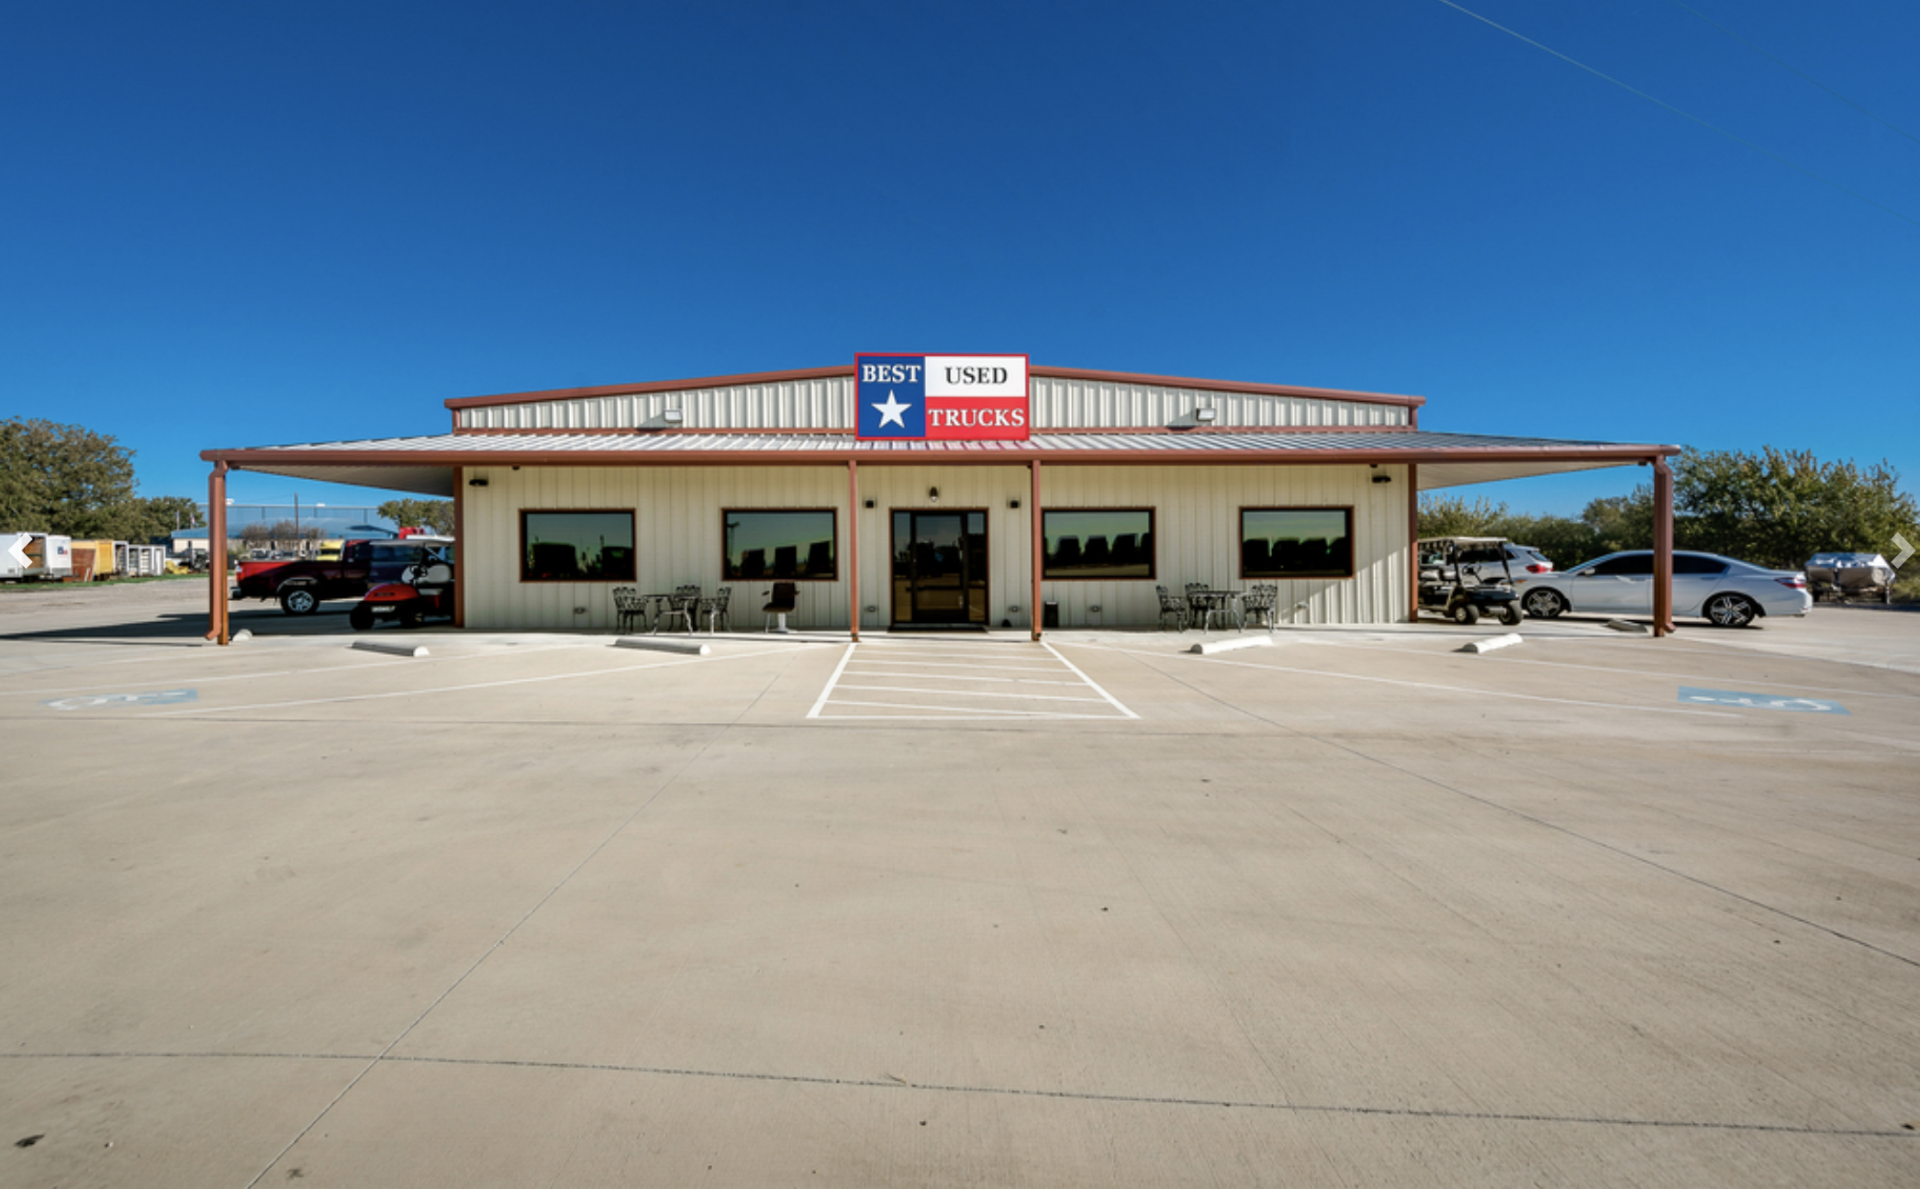 Lot 2 - Industrial/Commercial Property northwest of Fort Worth, TX